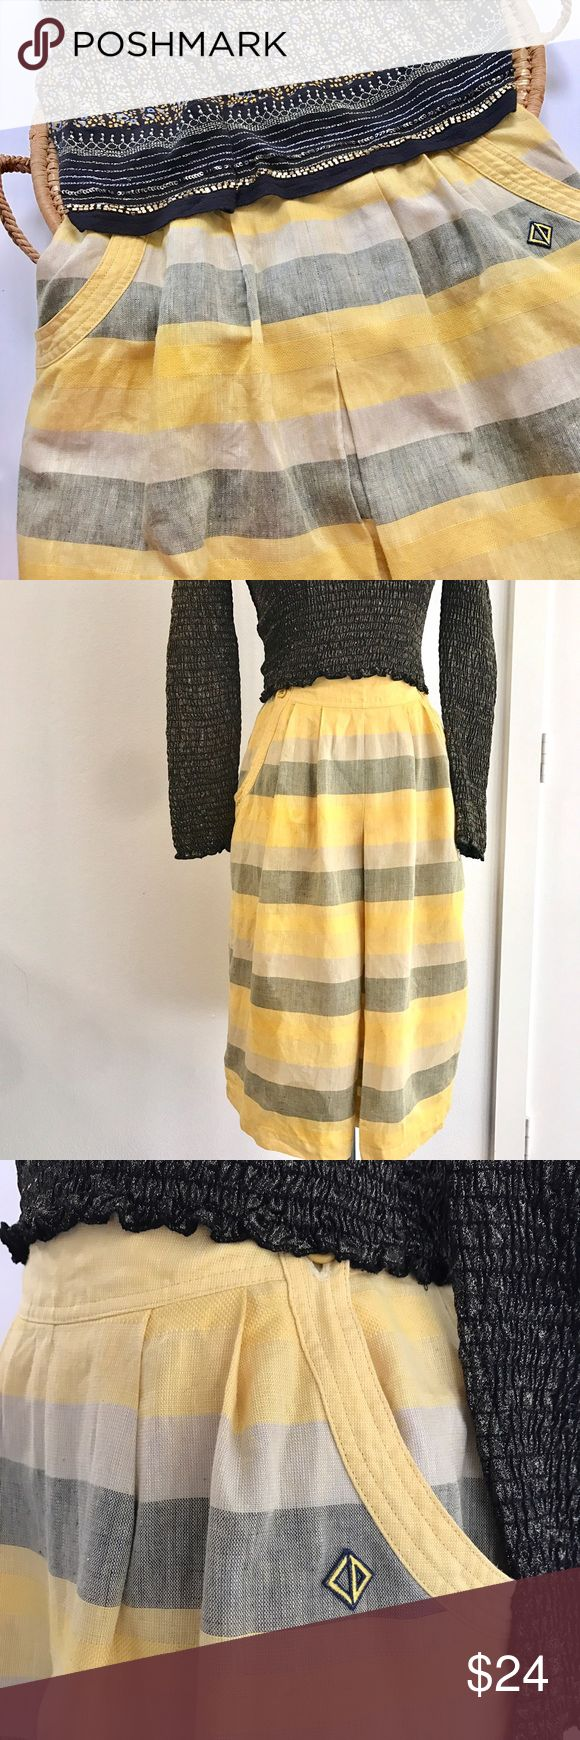 """Vintage Christian Dior sport skirt Vintage Christian Dior skirt size medium. Authentic! Very cute pockets and great color for spring and summer. Style with mixed print cropped top and sandals. Waist flat is 12"""" and length is 24"""".  Has very light spots on bottom, hard to see unless your really close. See last pic Christian Dior Skirts"""